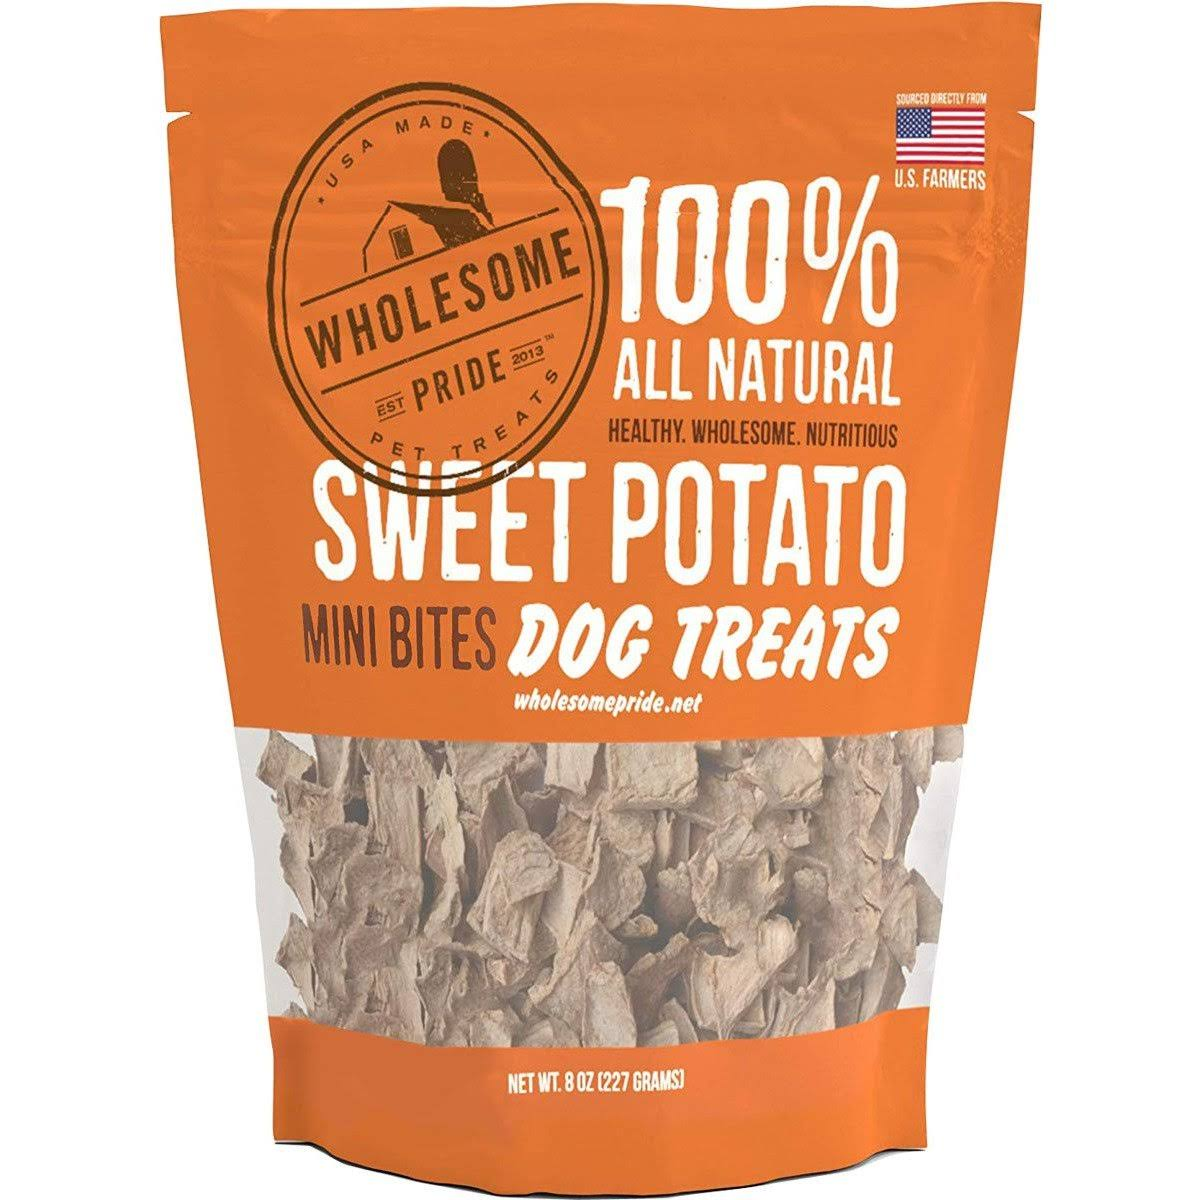 Wholesome Pride Sweet Potato Mini Bites Dog Treats - 8 oz